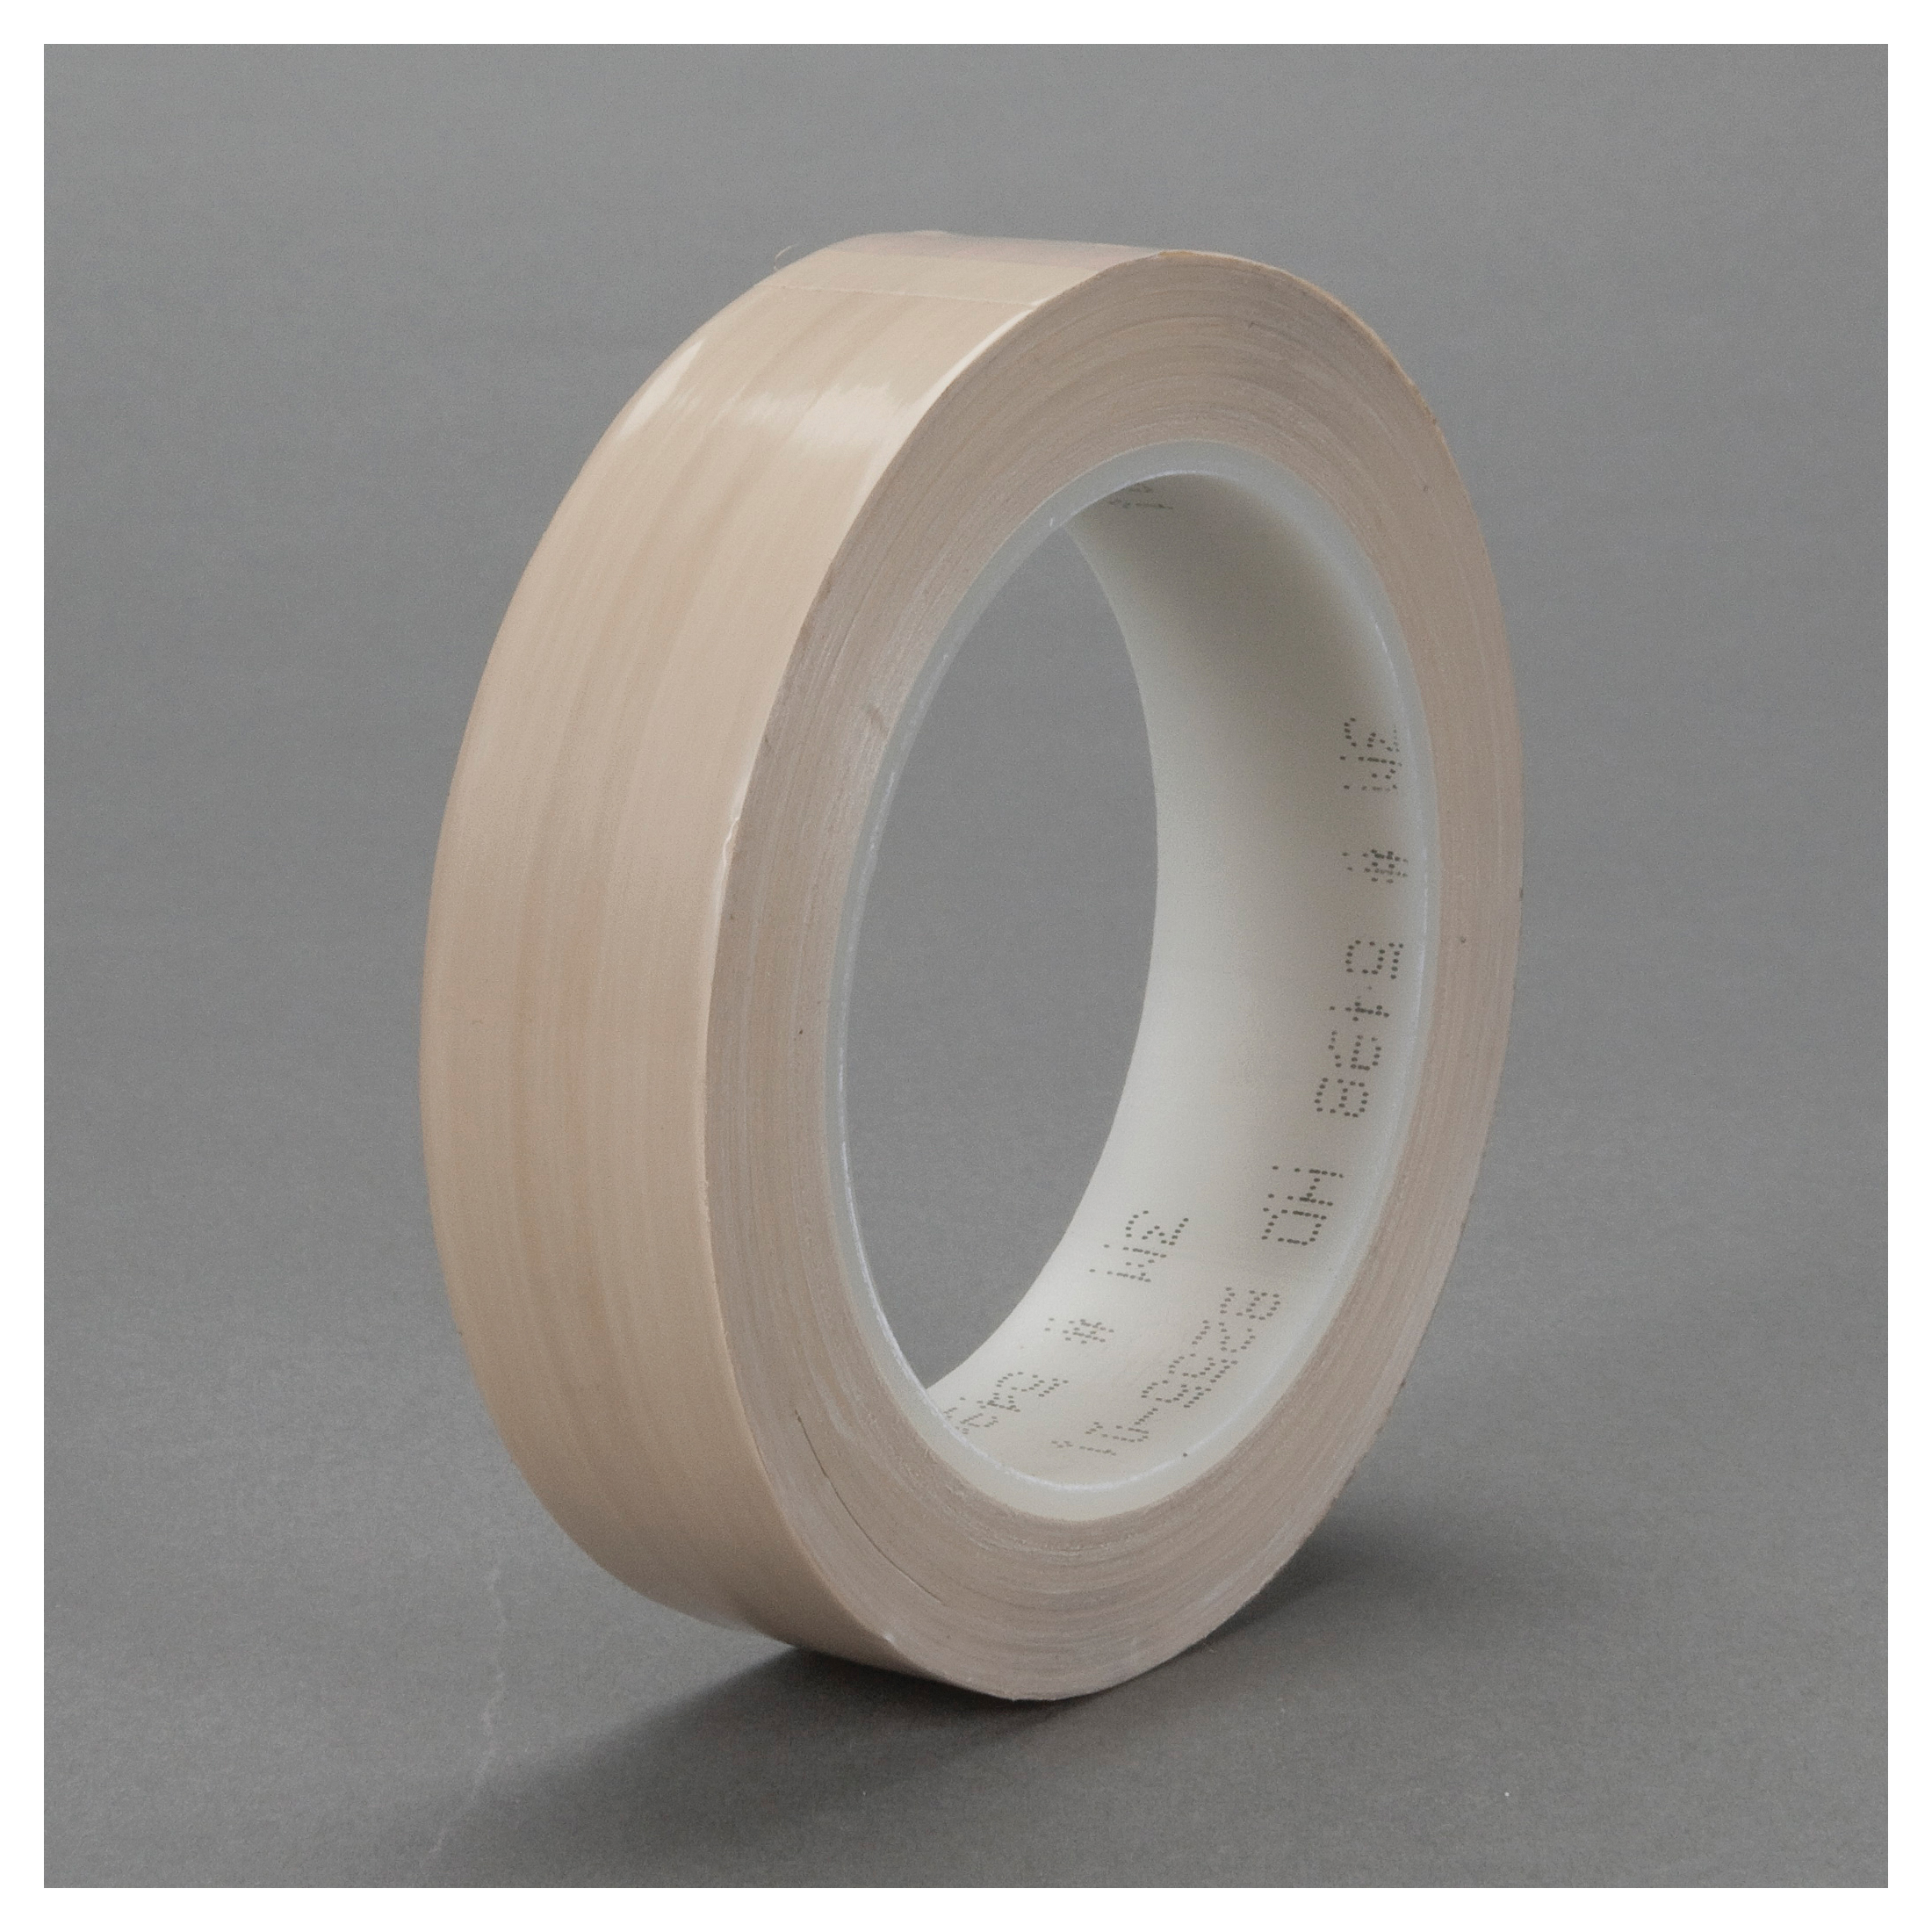 3M™ 021200-24842 Film Tape, 36 yd L x 1 in W, 4 mil THK, Silicon Free Rubber Adhesive, Extruded PTFE Backing, Brown